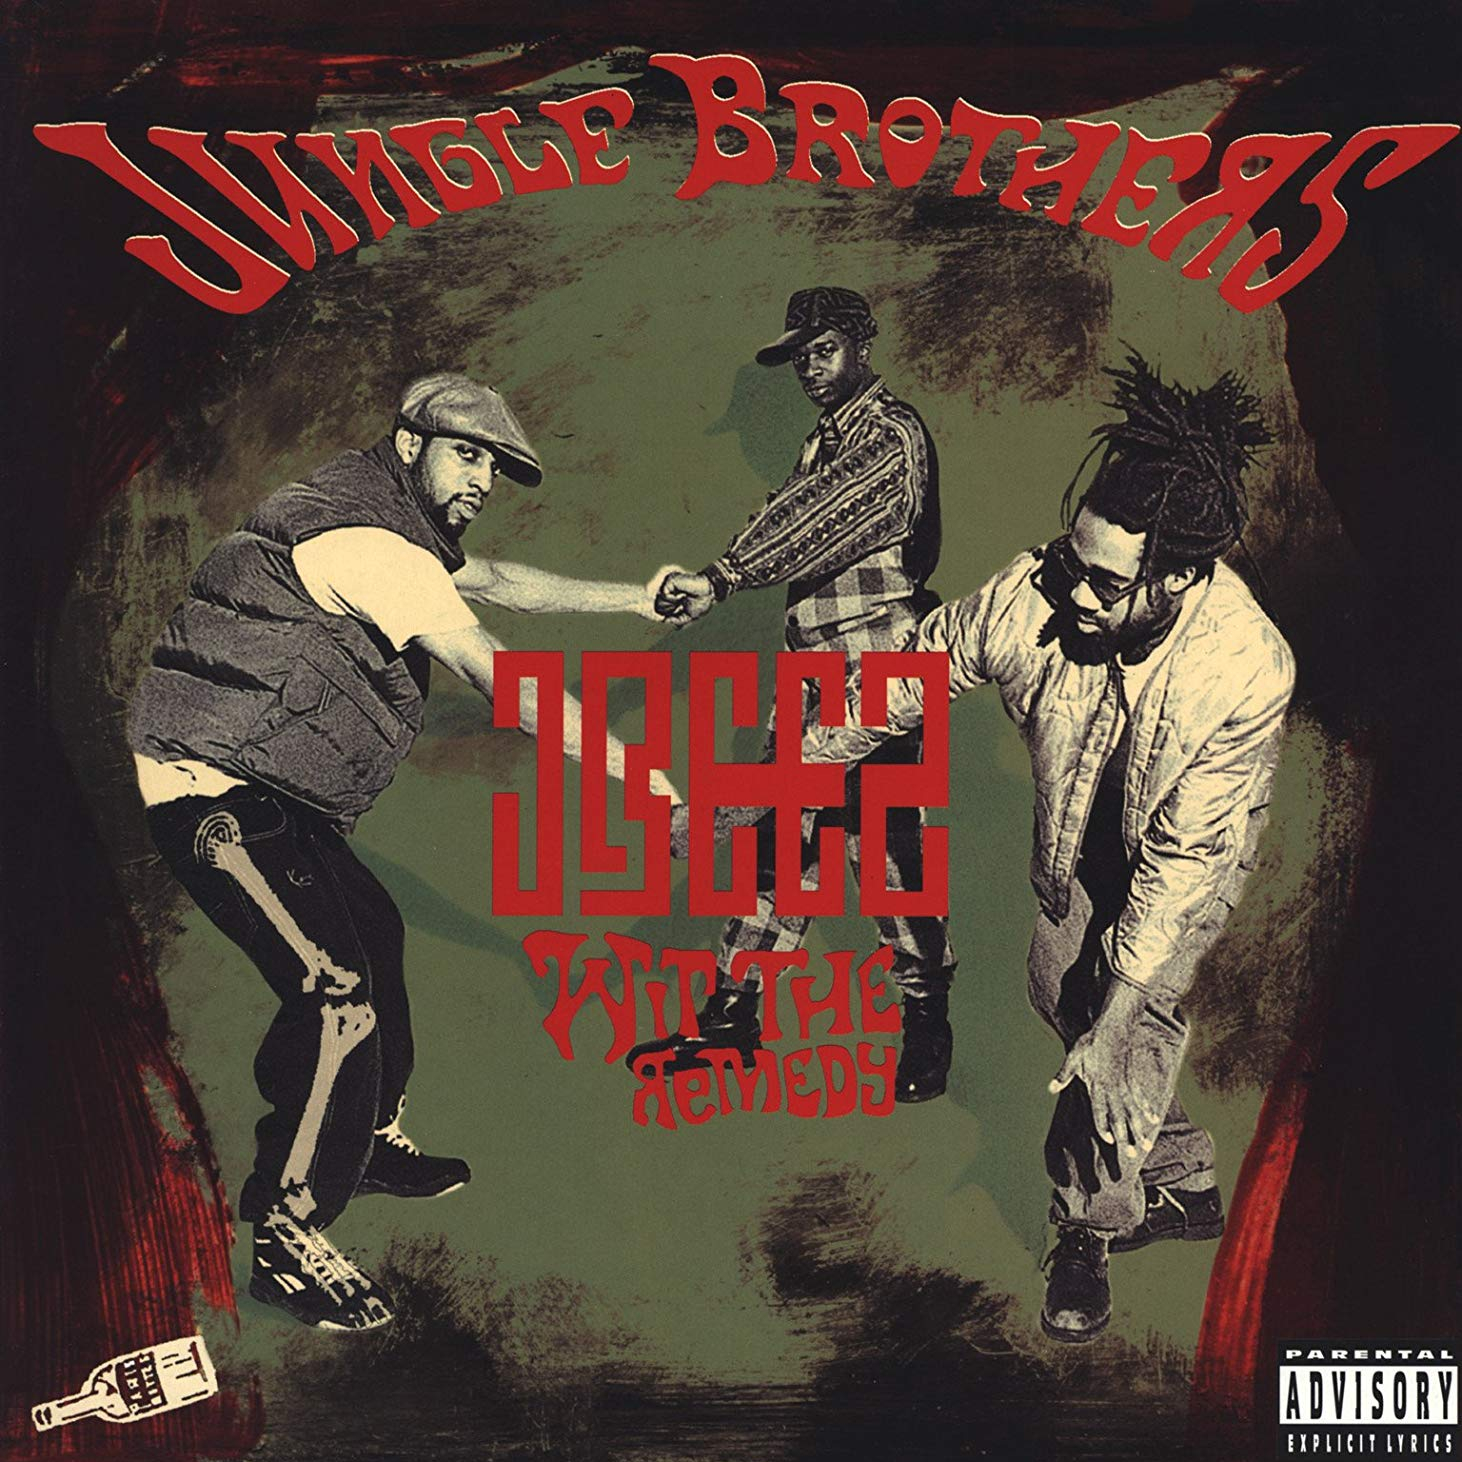 audio review : J Beez Wit The Remedy ( album ) ... Jungle Brothers